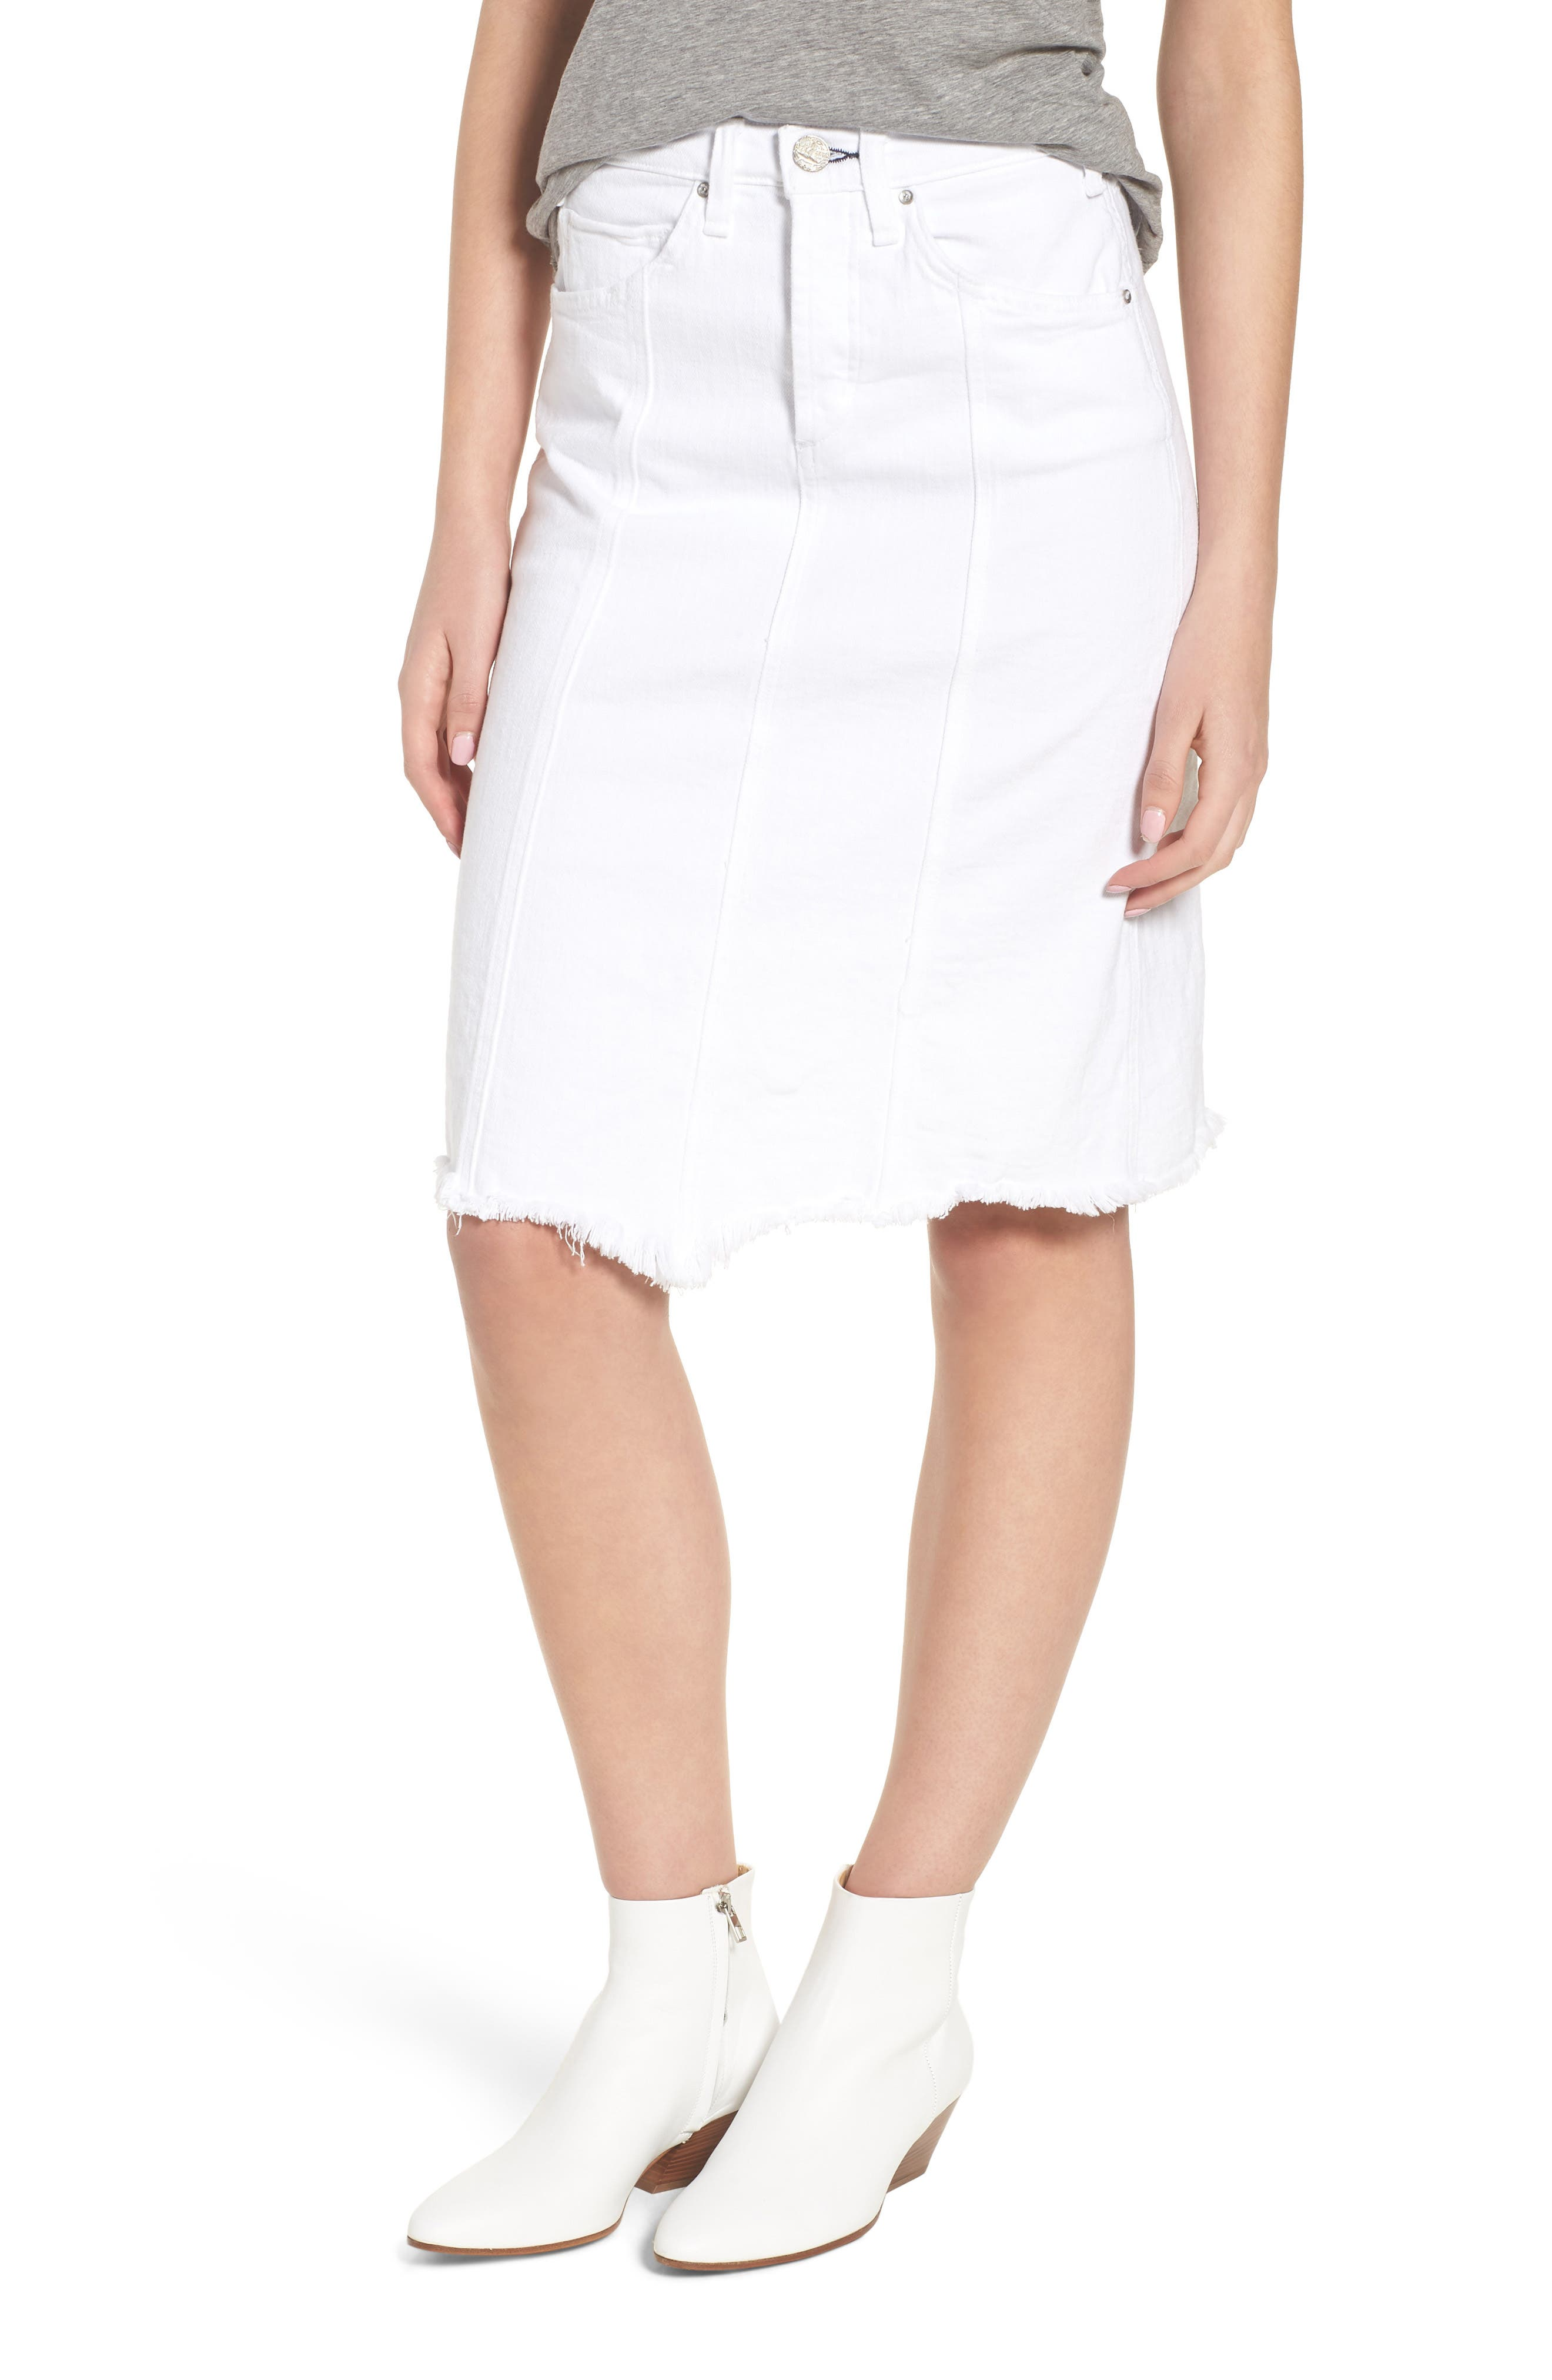 Carangi Angled Hem Denim Skirt,                         Main,                         color, 100